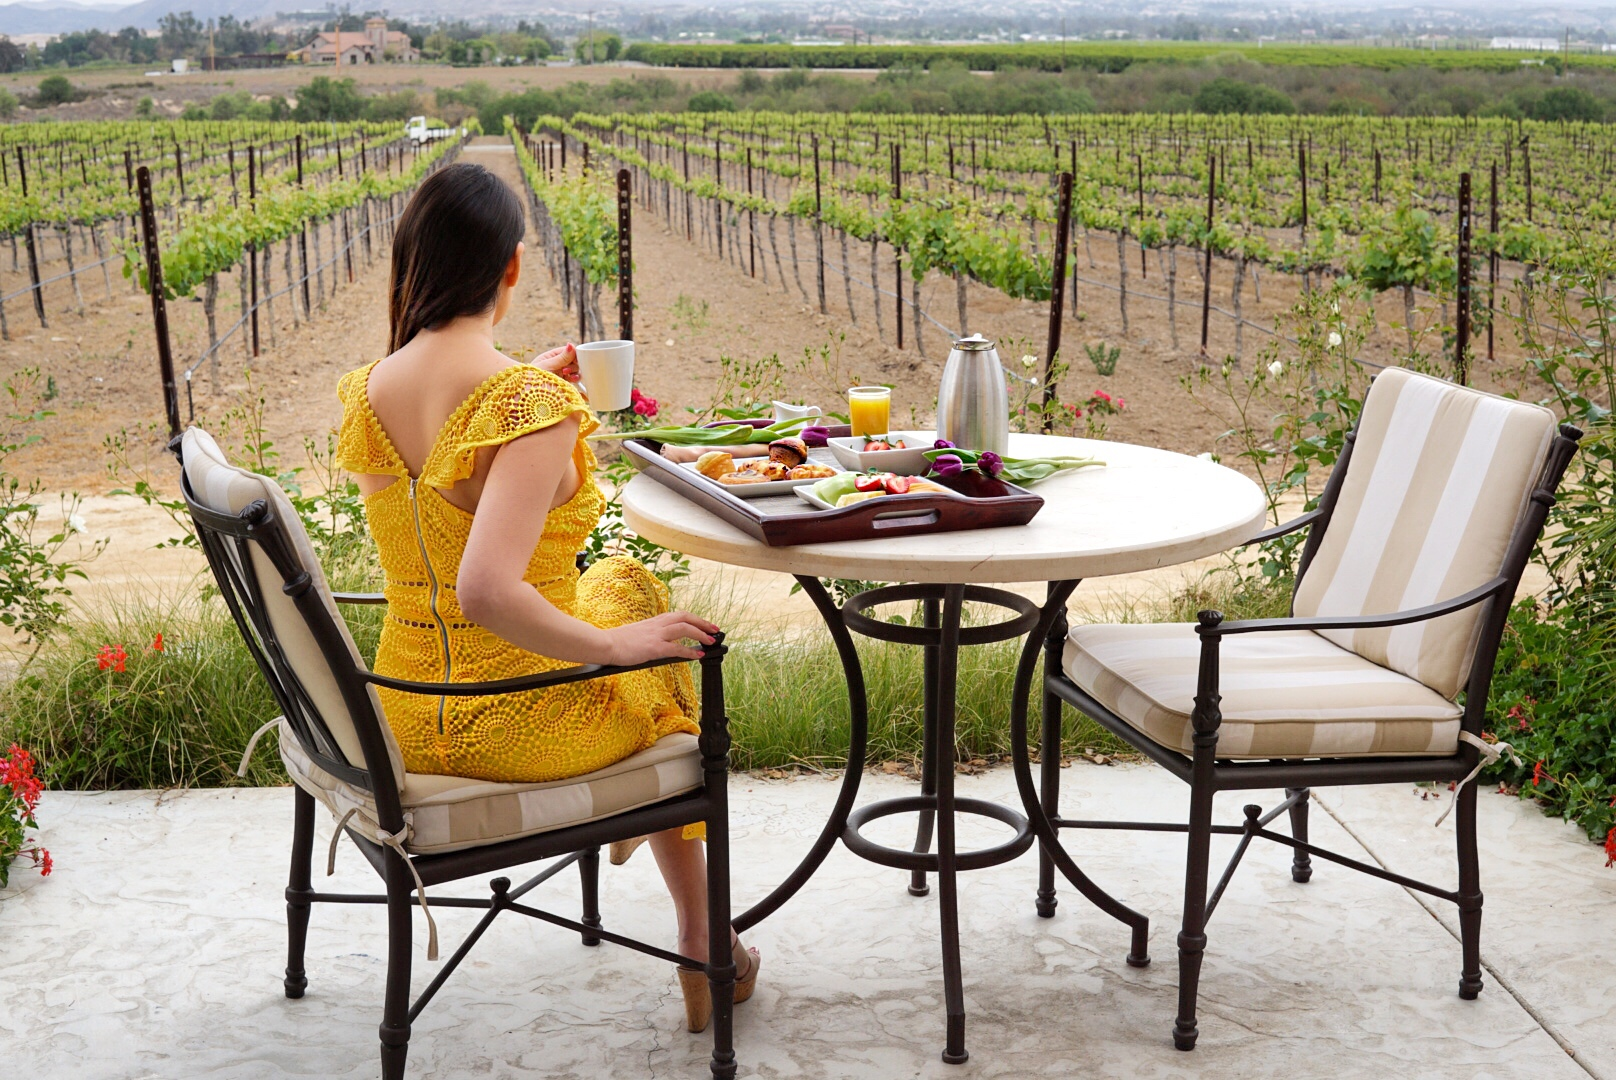 Walk Off Your Patio And Into The Vineyards At This Beautiful Temecula Hotel